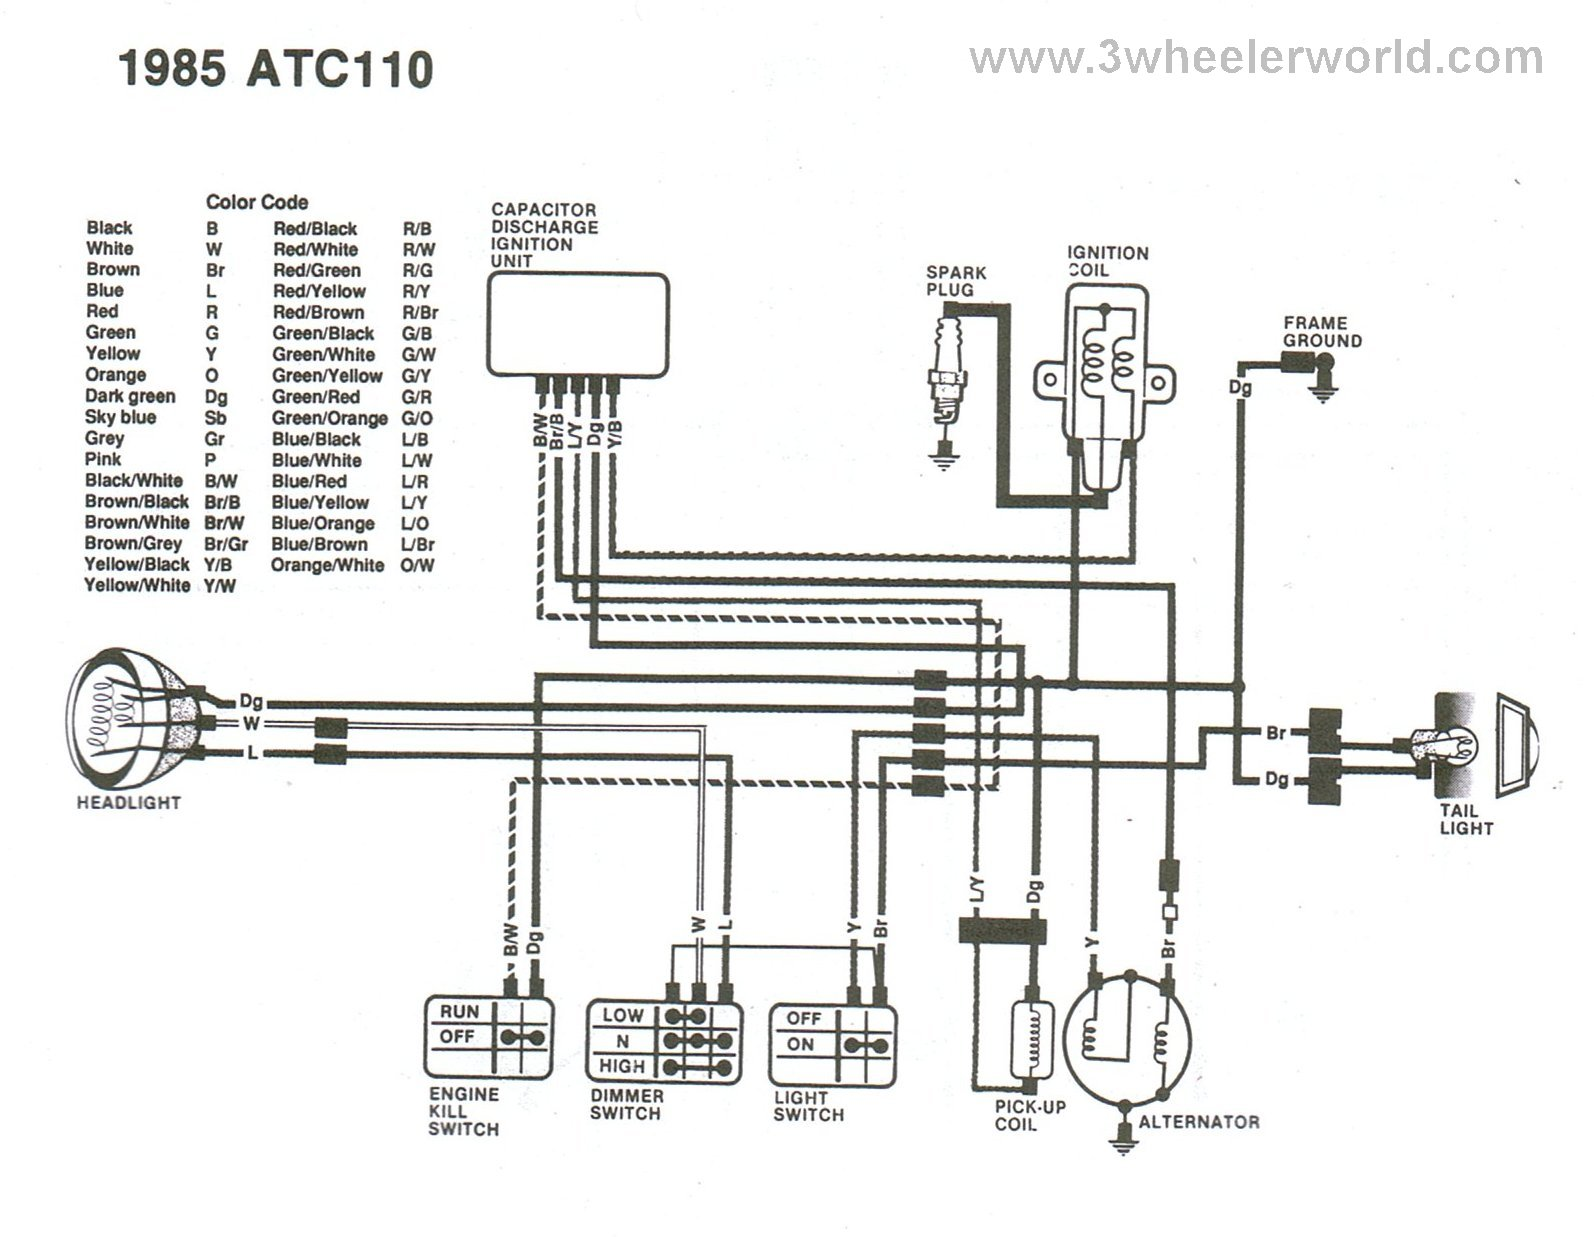 3 wheeler world tech help honda wiring diagrams rh 3wheelerworld com  honda xrm 110 wiring schematic